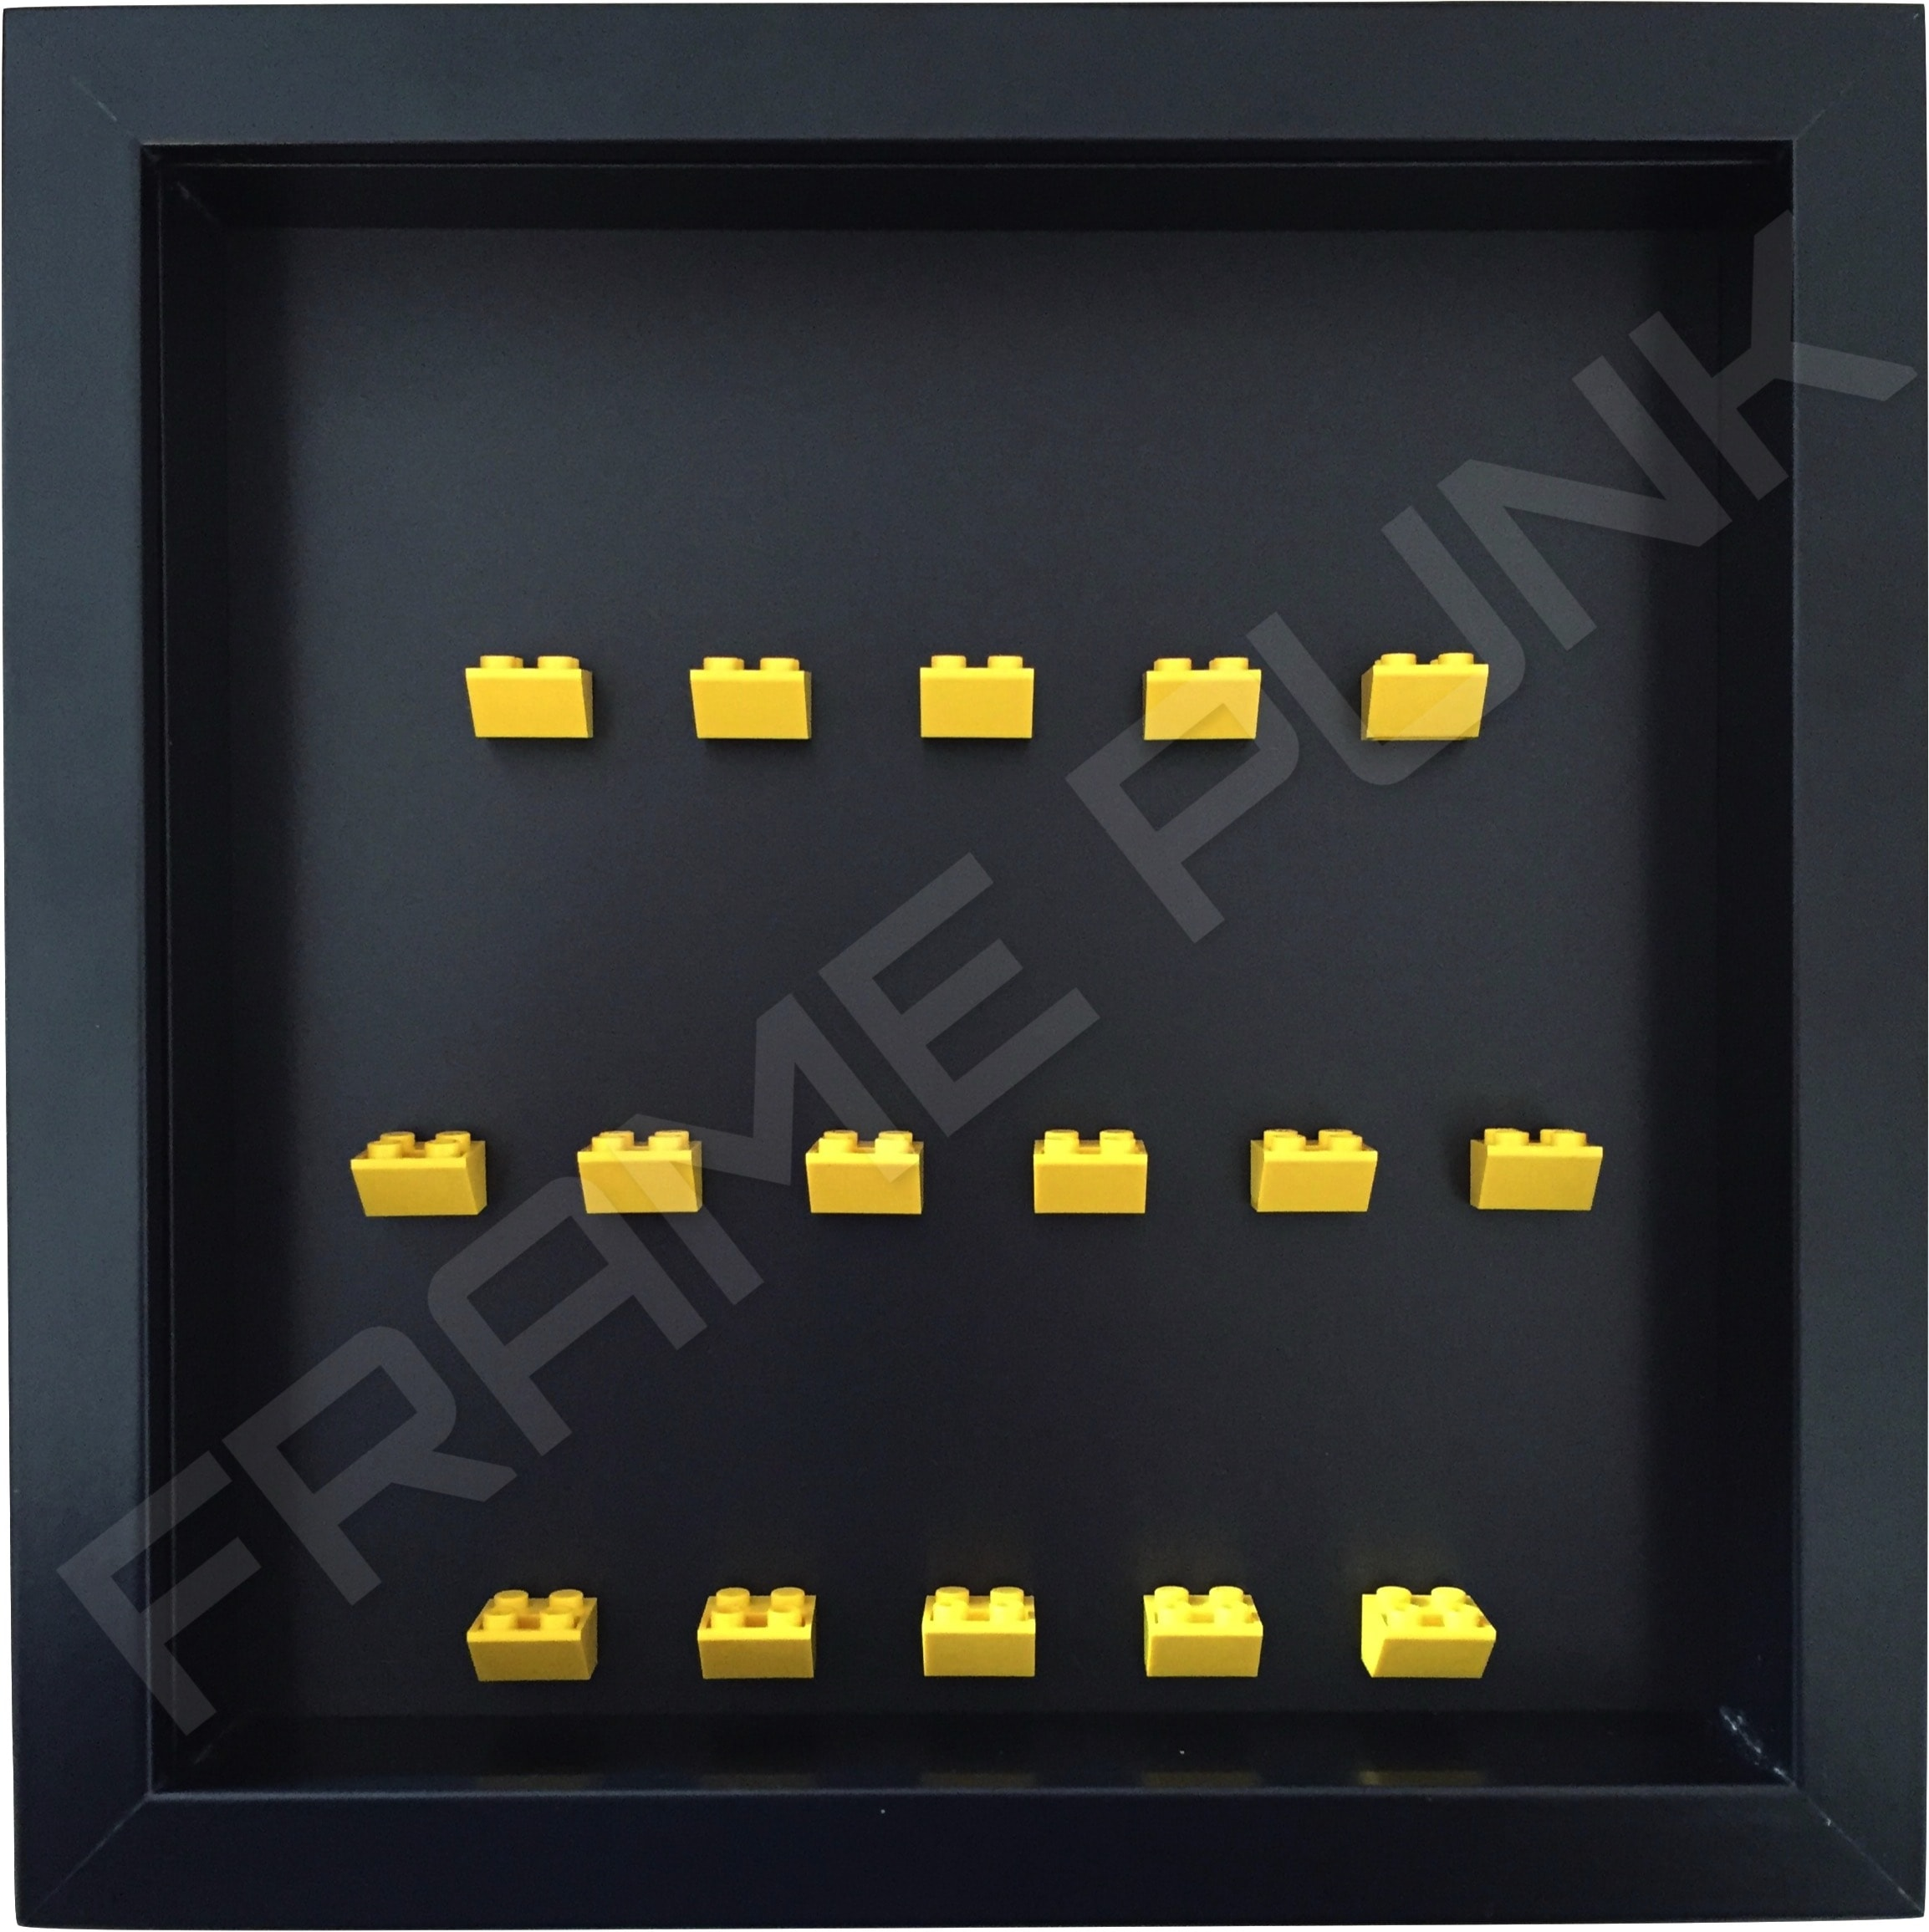 Yellow Lego brick formation on black background